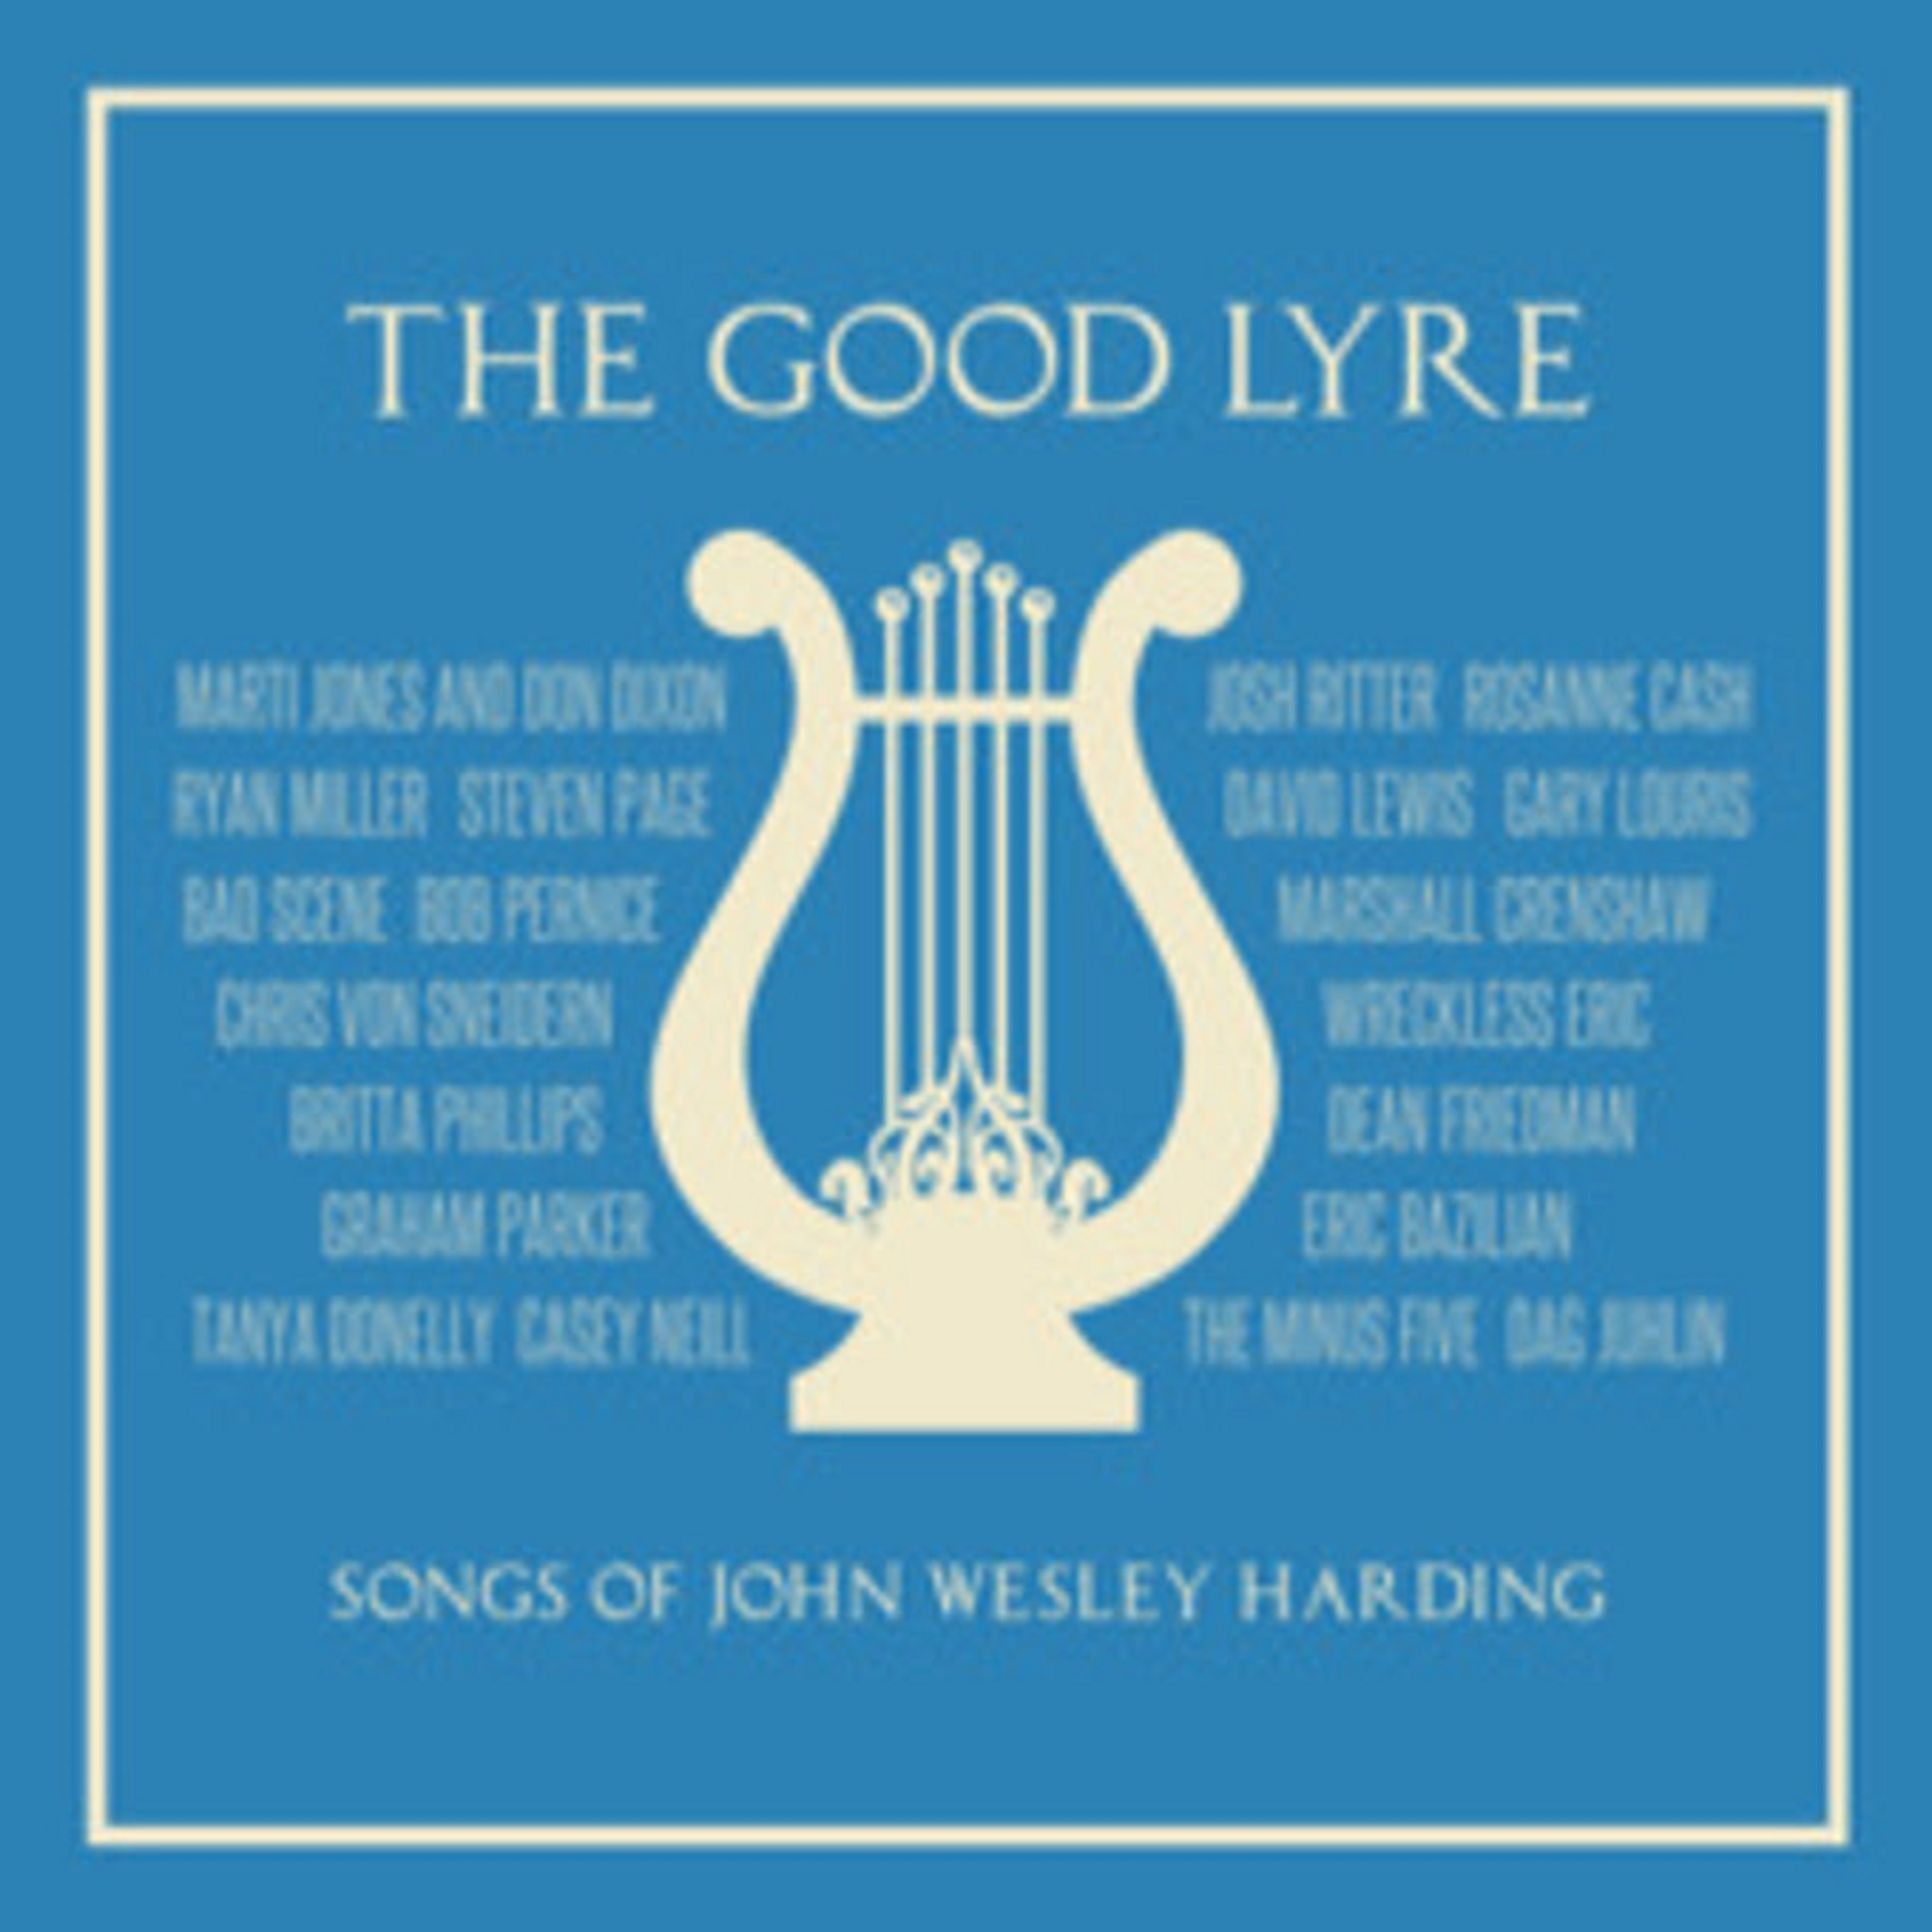 'The Good Lyre: The Songs of John Wesley Harding' Bandcamp album is benefit for Sweet Relief Musicians Fund